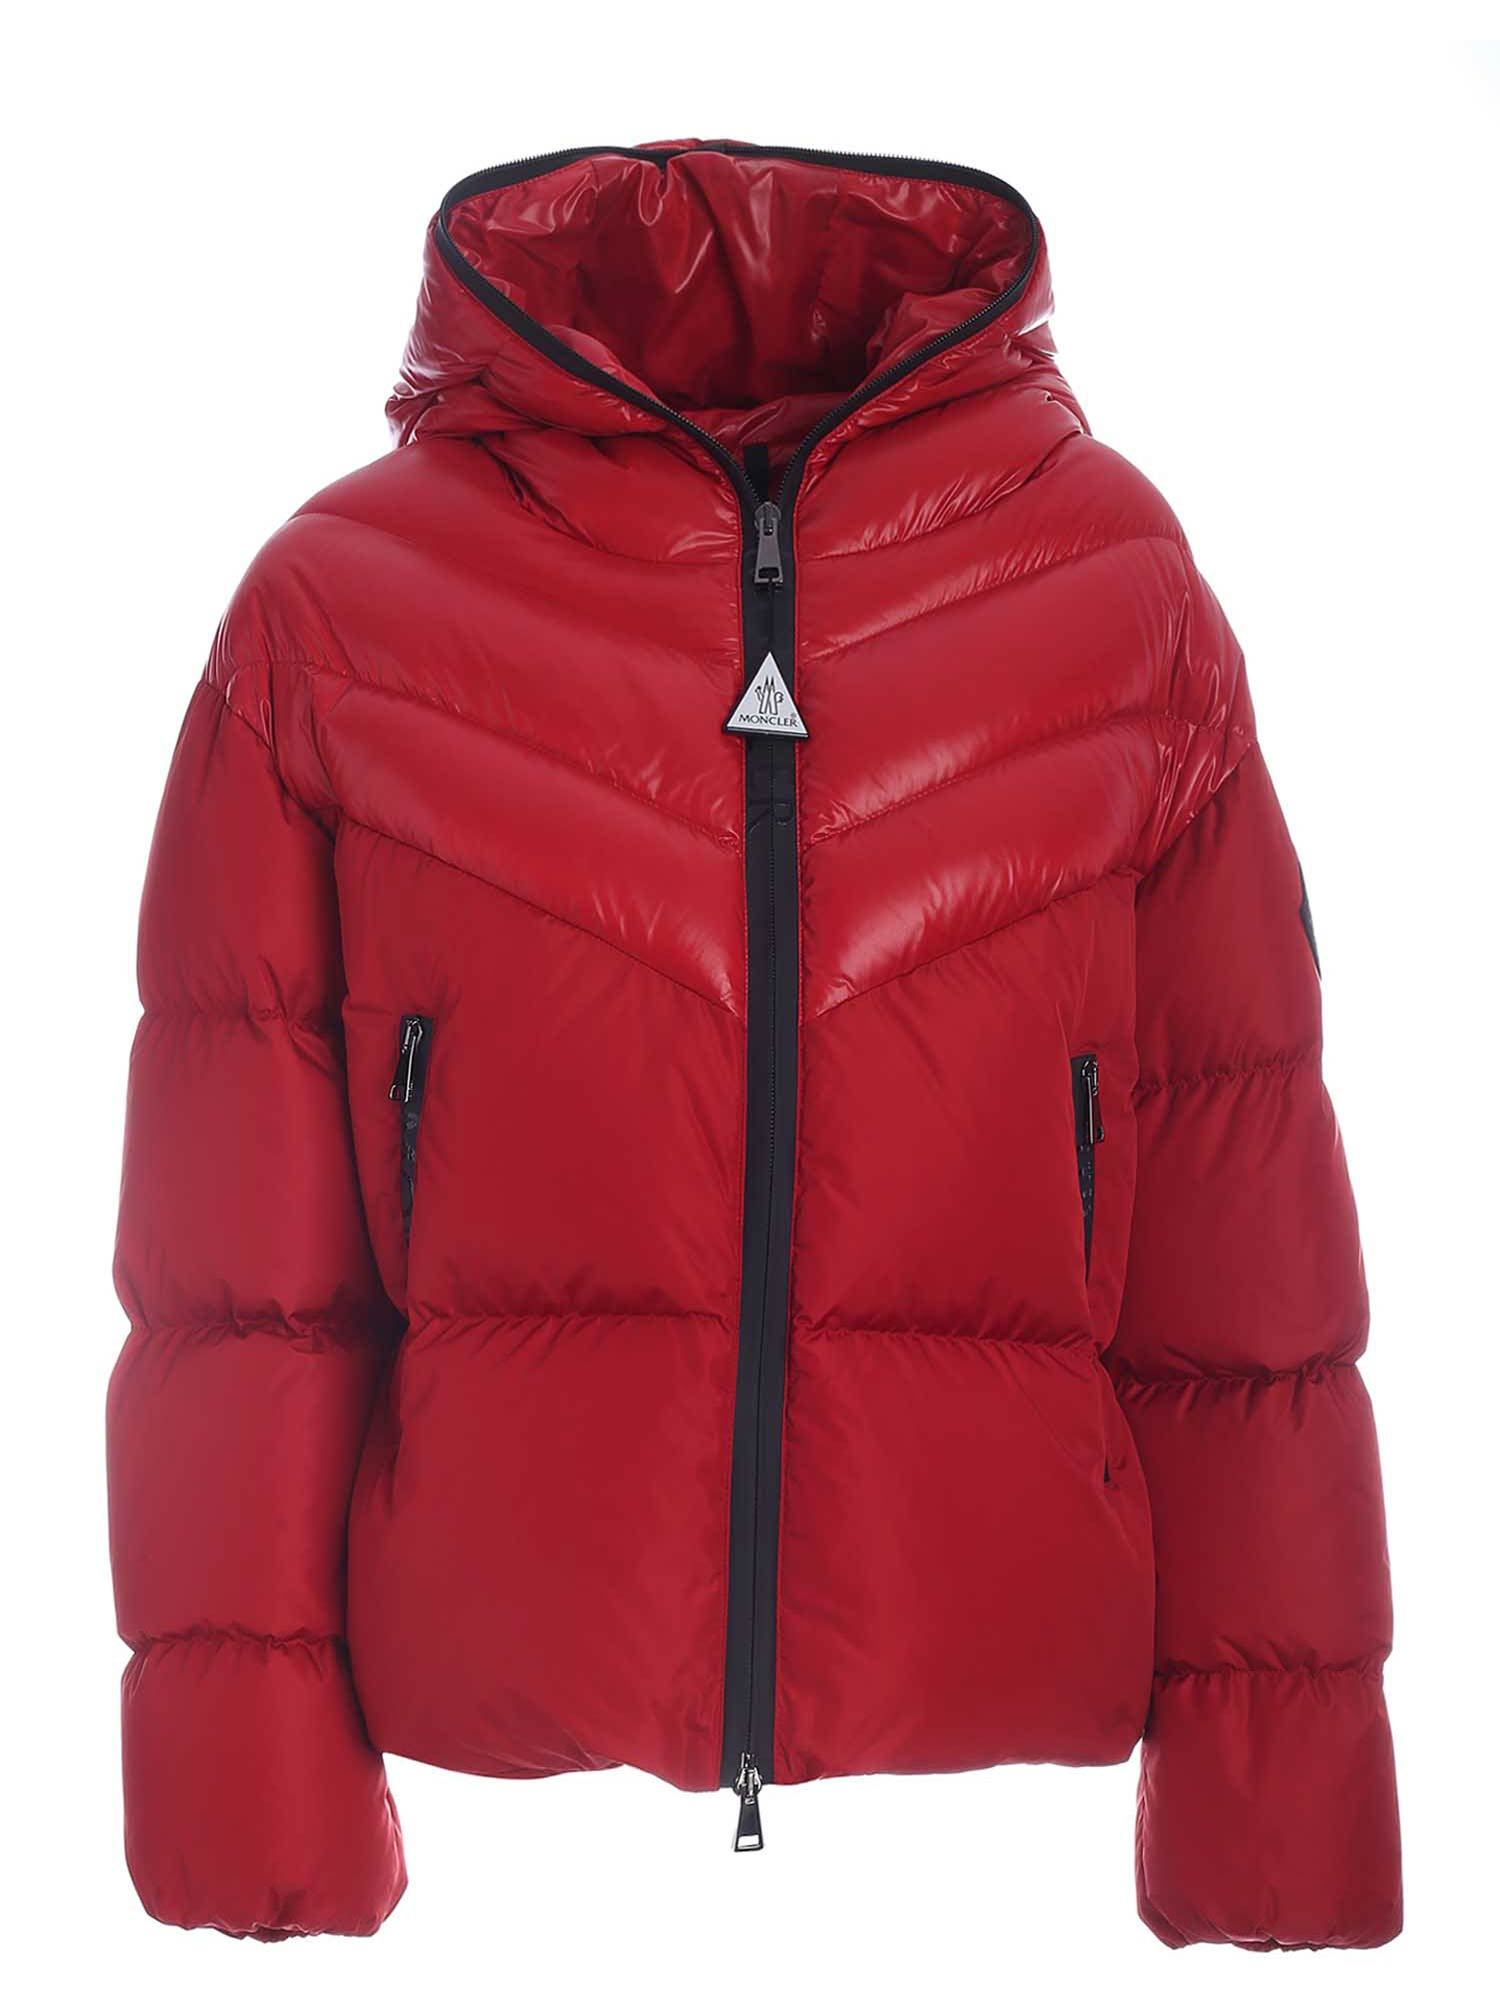 Moncler GUENIOC DOWN JACKET FEATURING BRANDED POCKETS